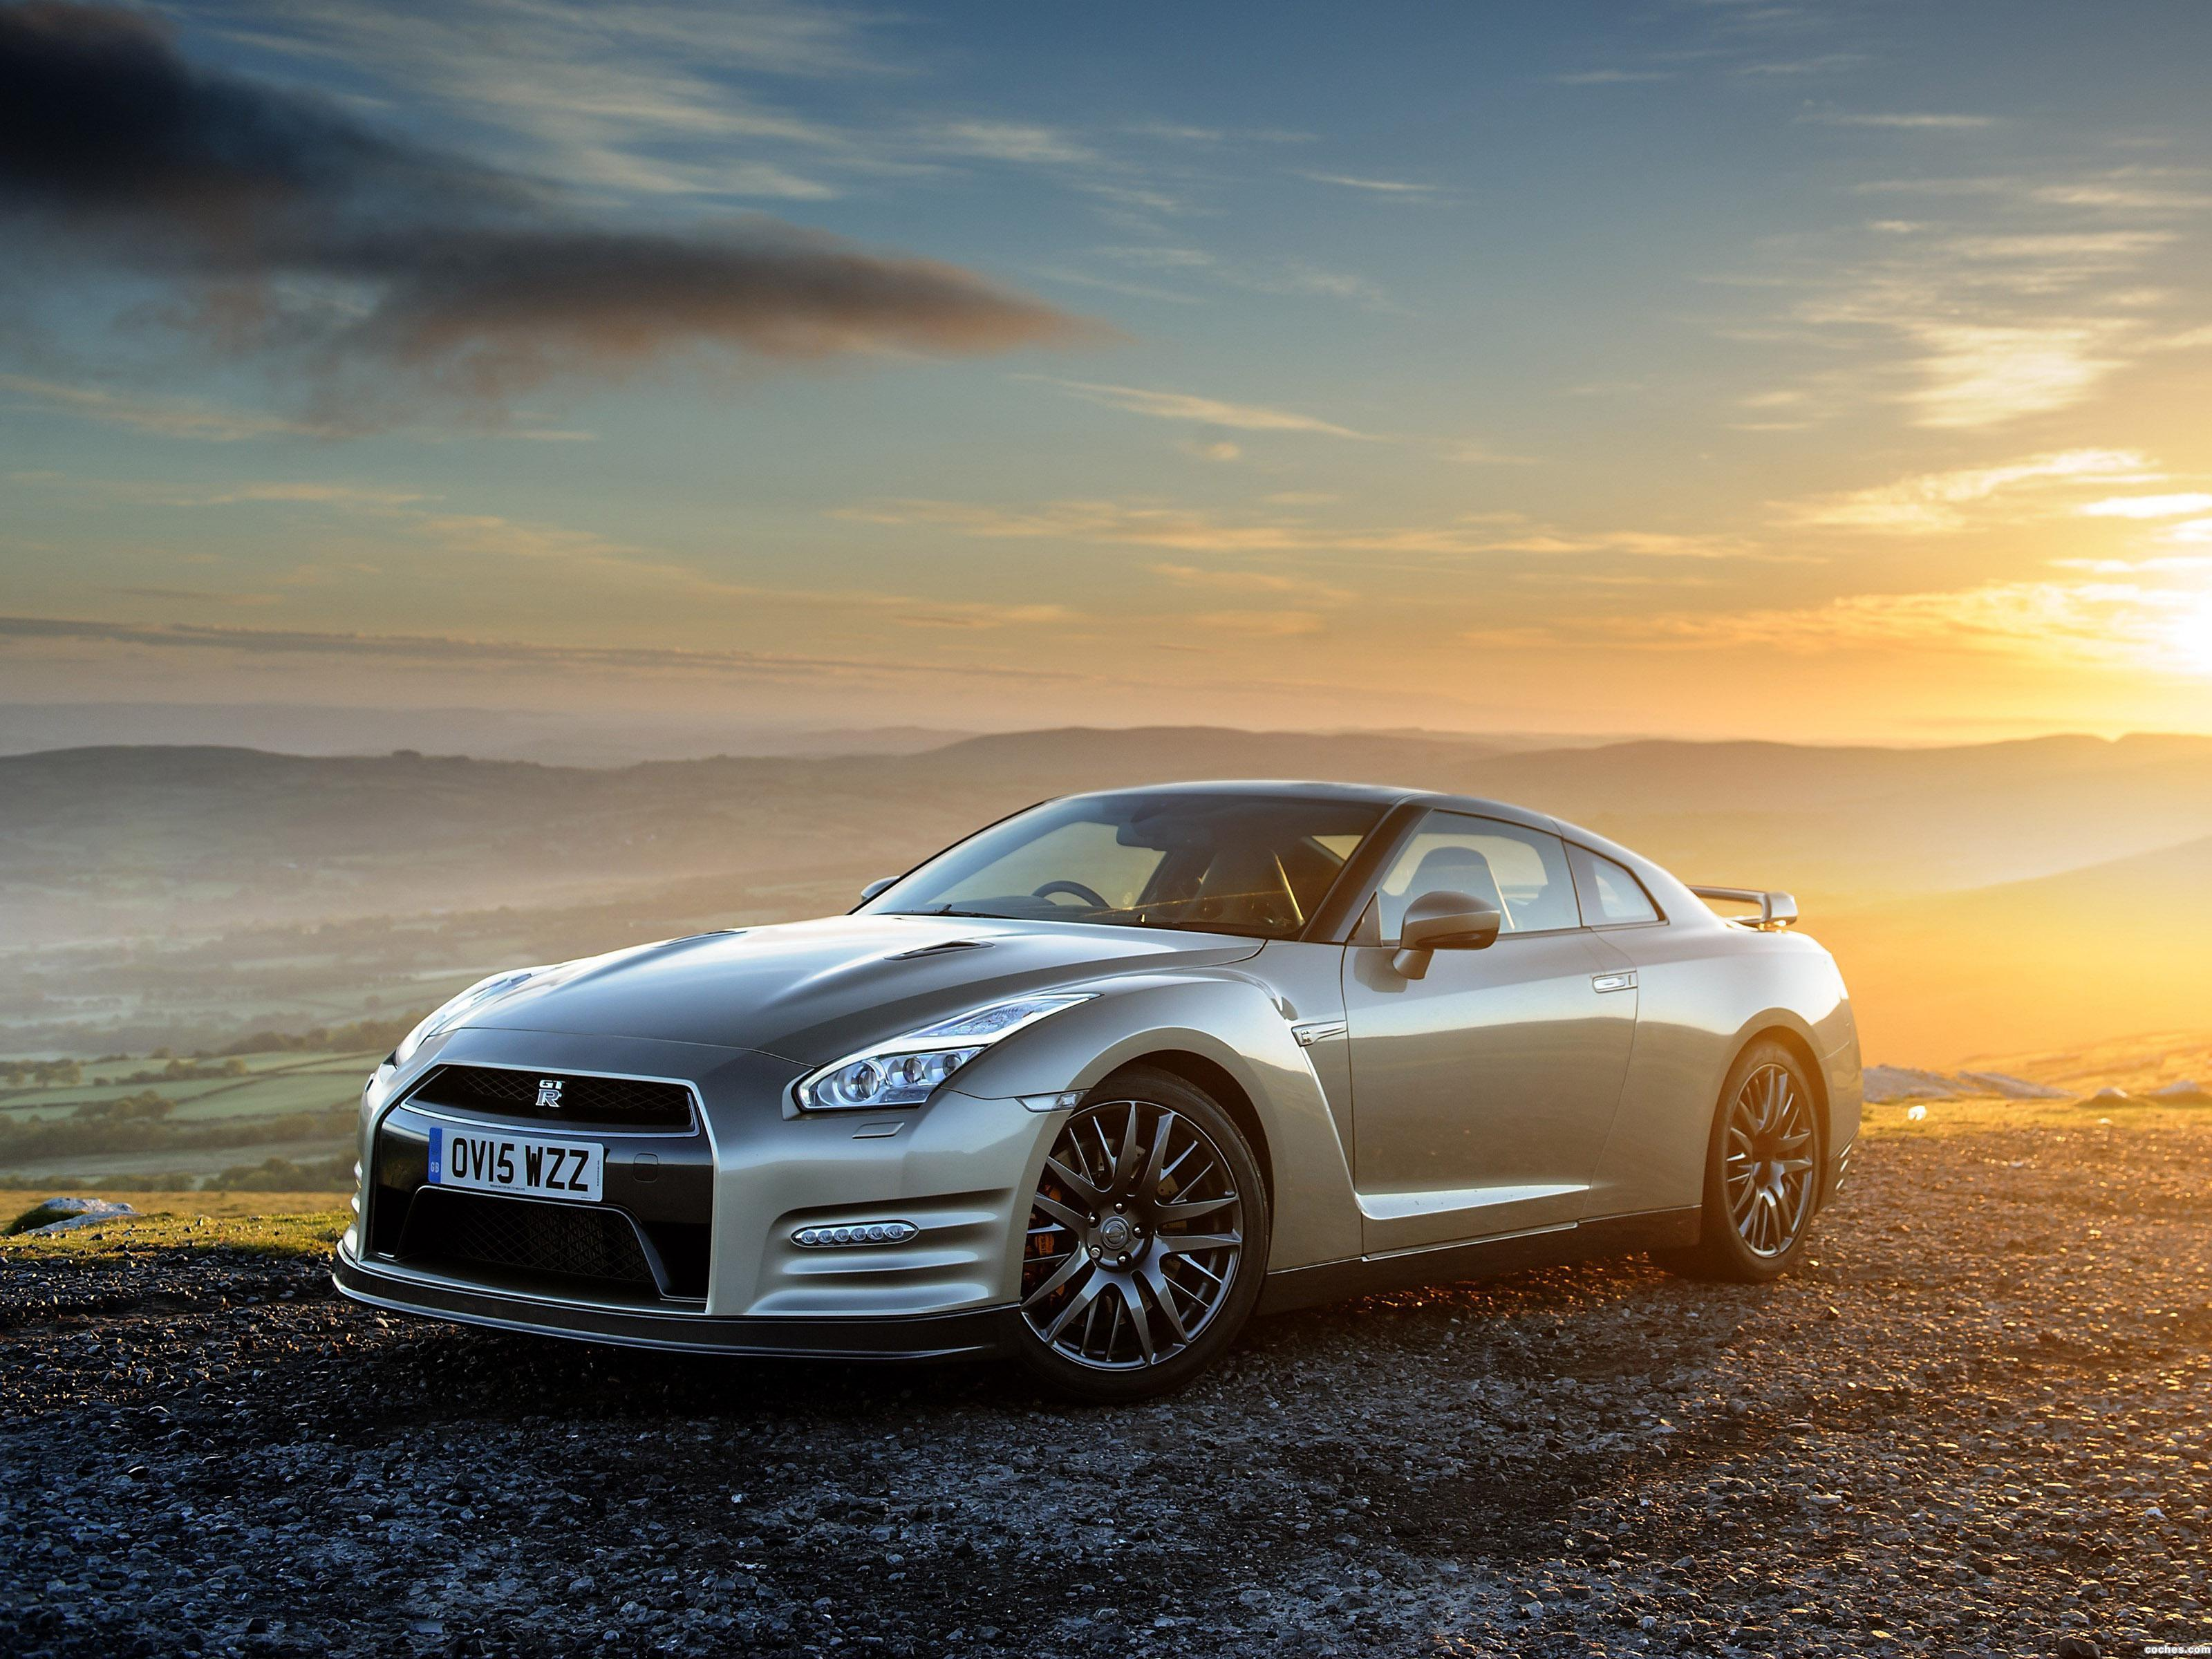 Foto 0 de Nissan GT-R 45th Anniversary R35 UK 2015